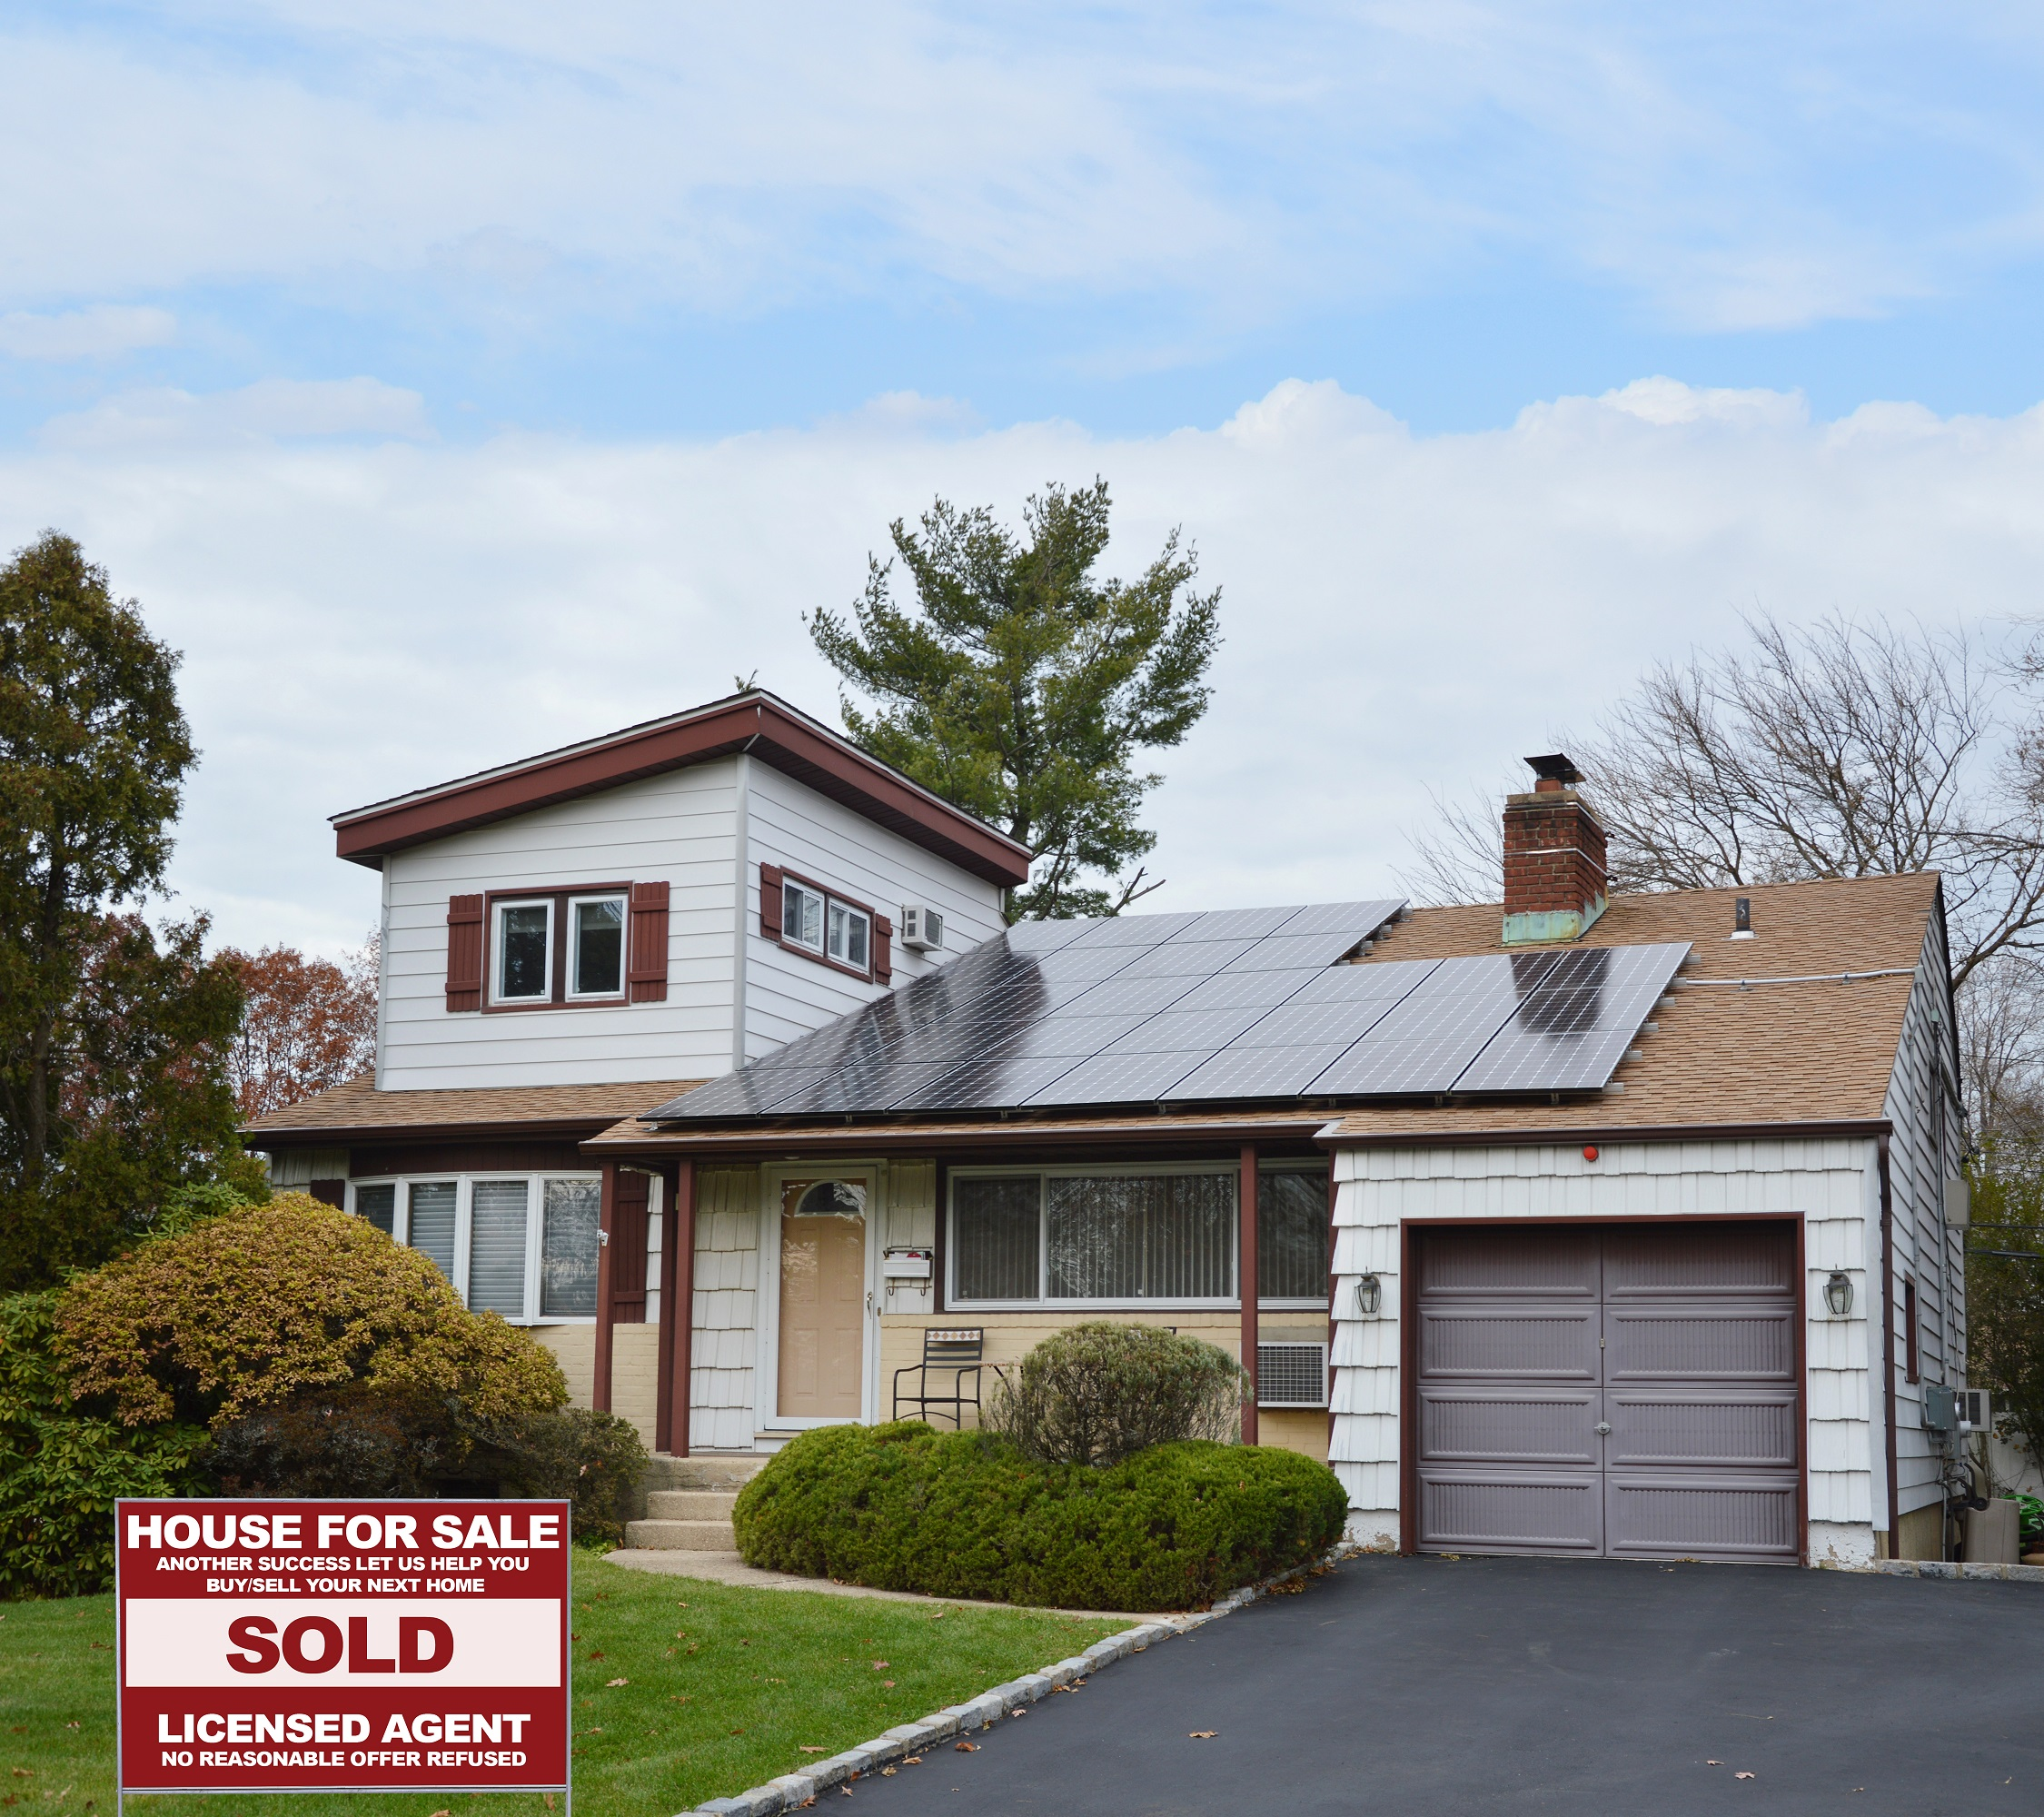 Jay Fontaine of the Fontaine Realty Team - RE/MAX Home Sale Services image 5